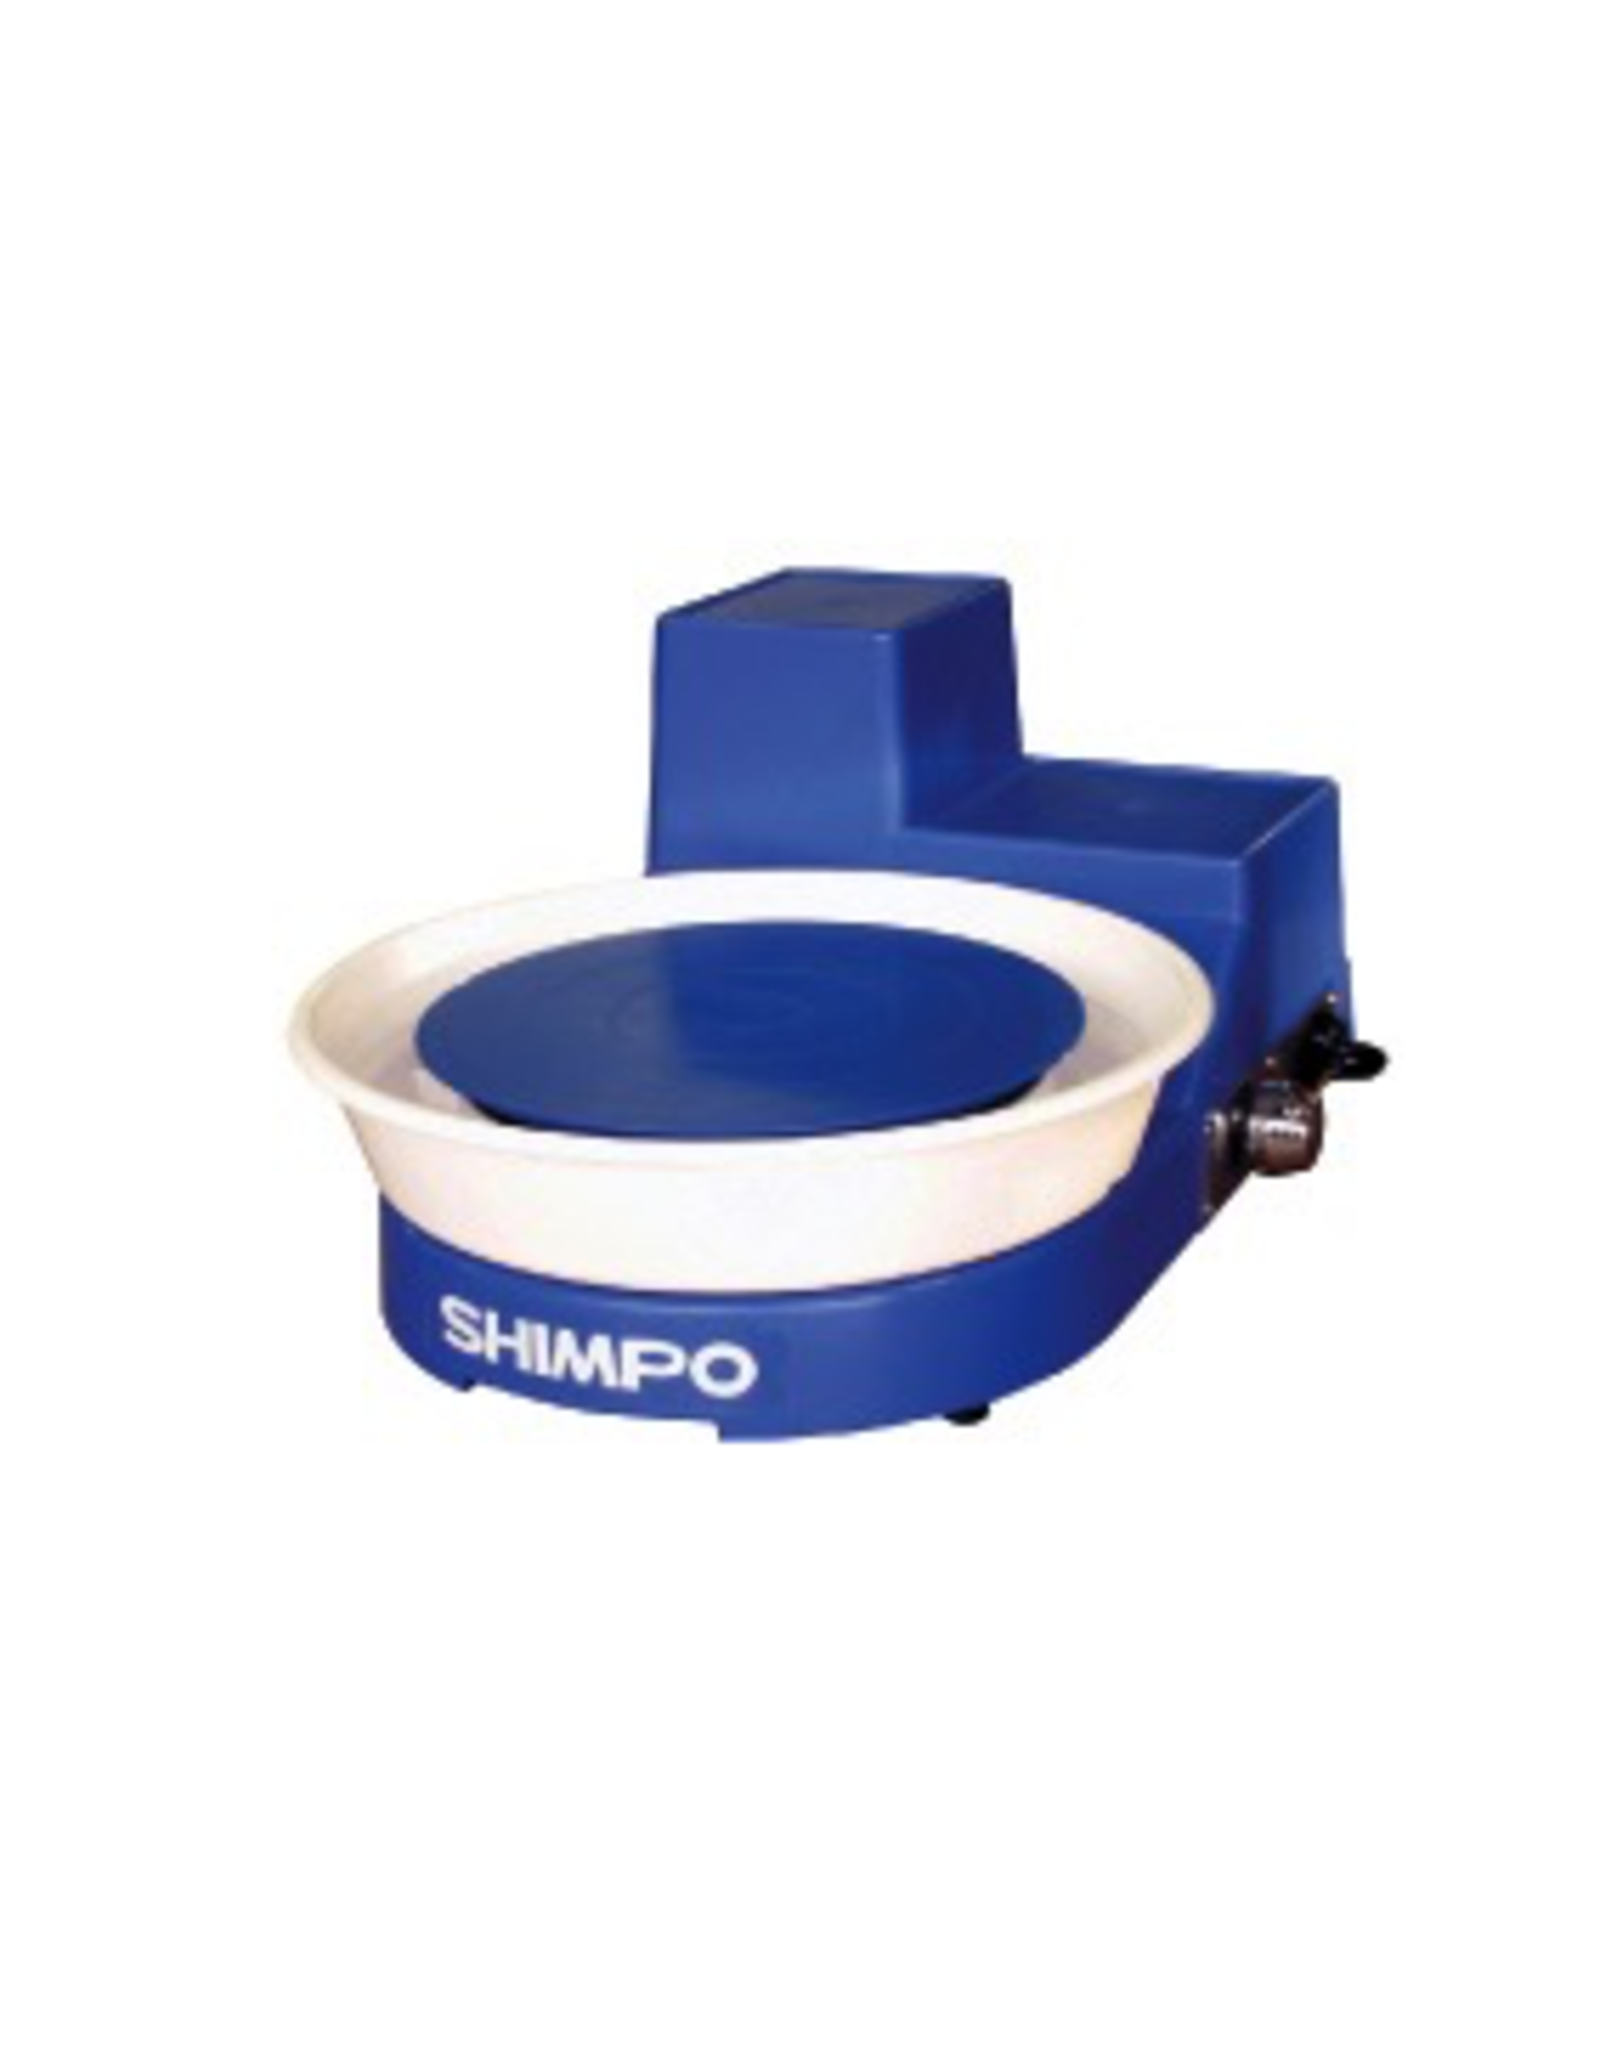 Shimpo RK5T  table top potters wheel